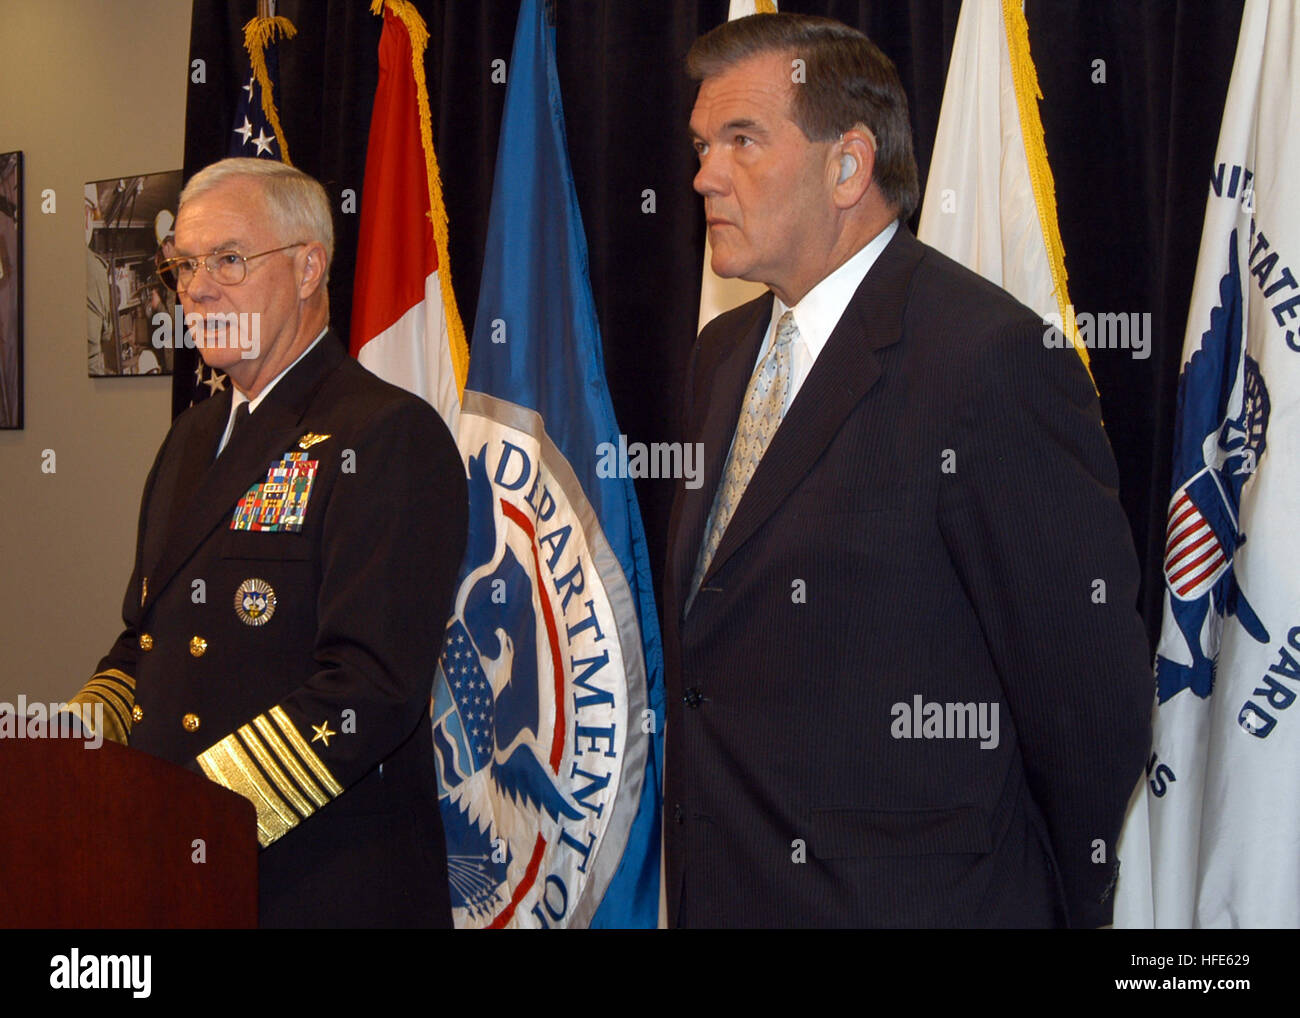 041117-N-2227W-003 Peterson Air Force Base, Colo. (Nov. 17, 2004) - Commander, North American Aerospace Defense - Stock Image